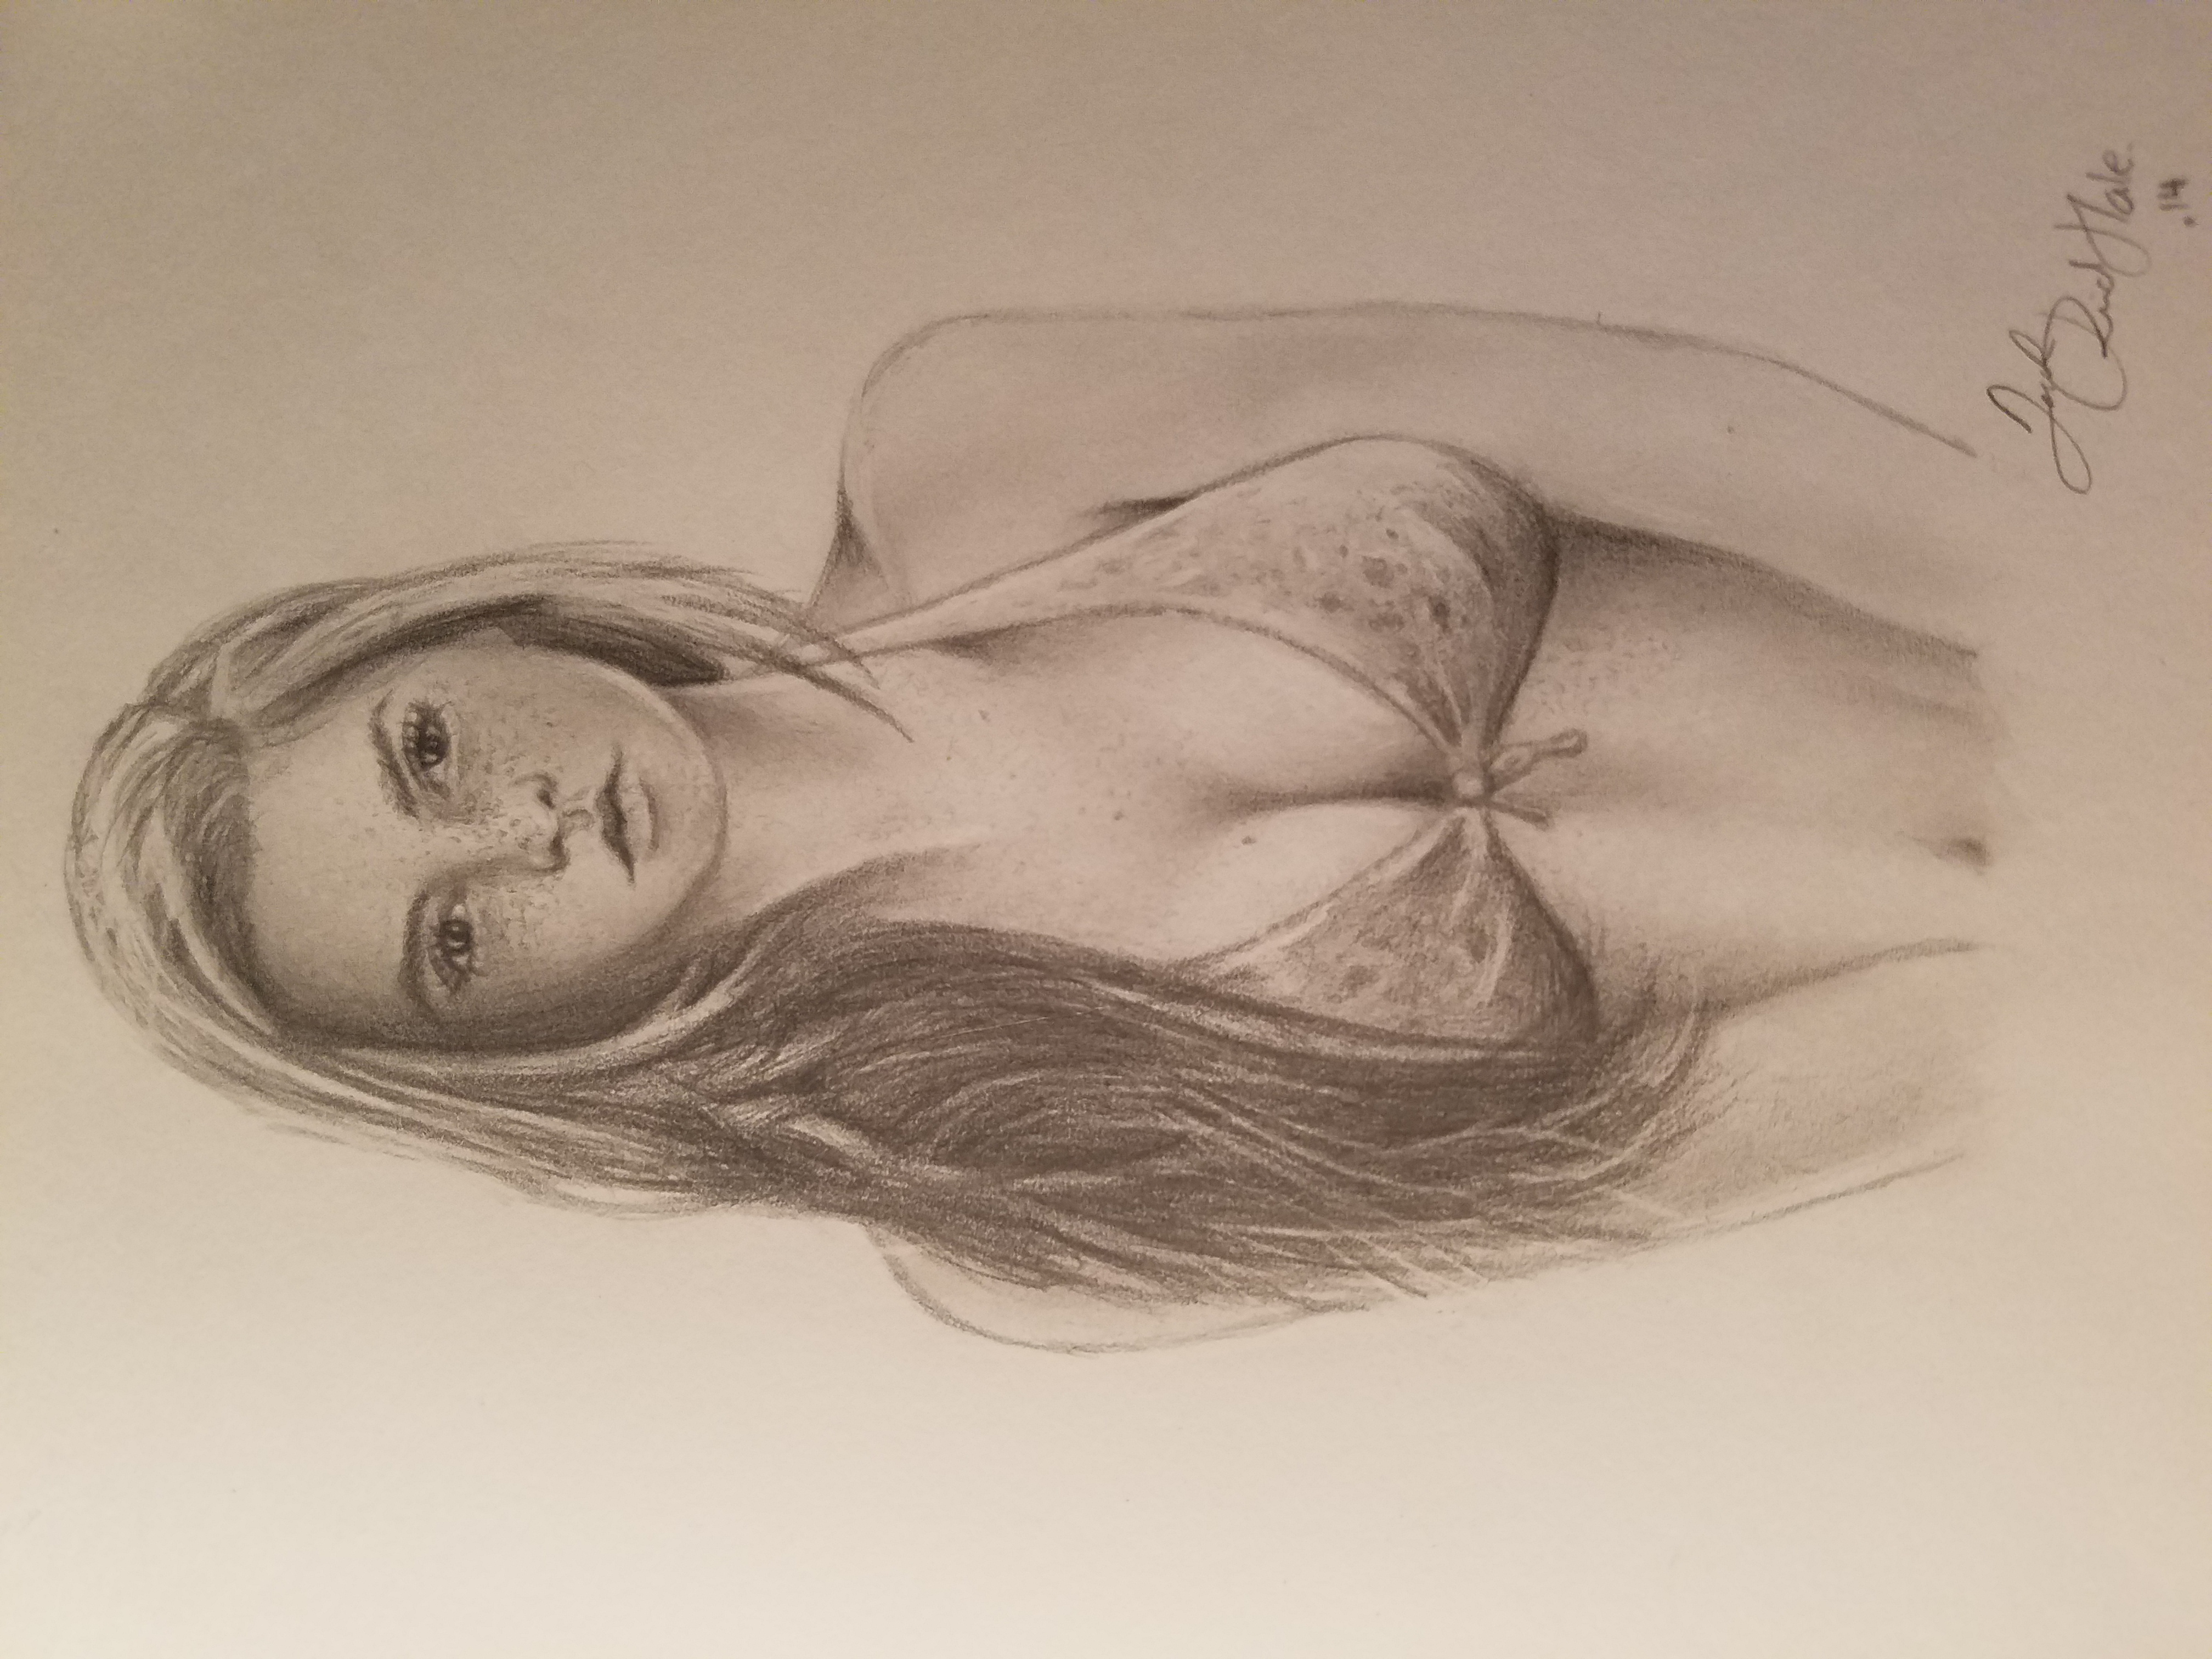 Srry bout the sideways thumbnail couldnt figure that out hope you like my pencil drawing of this girl